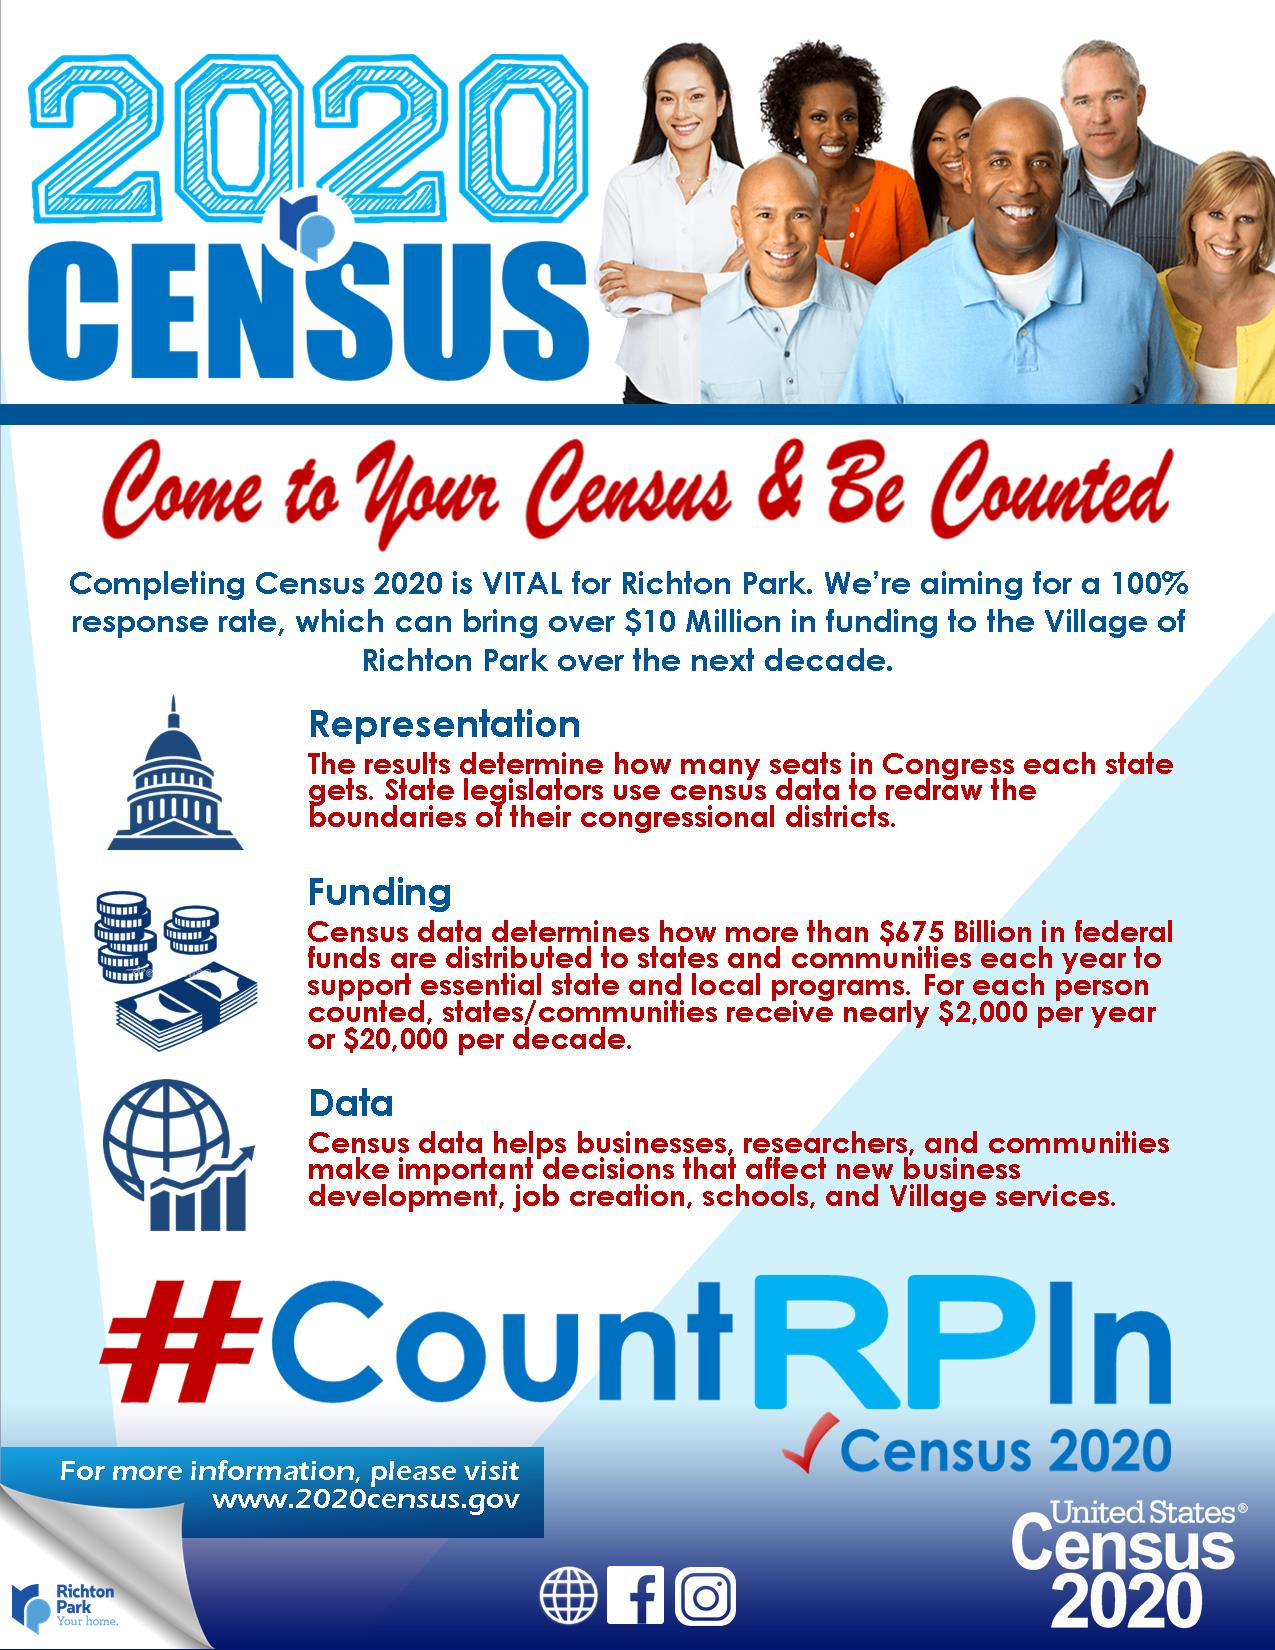 Richton Park Census2020 Promo May 2020